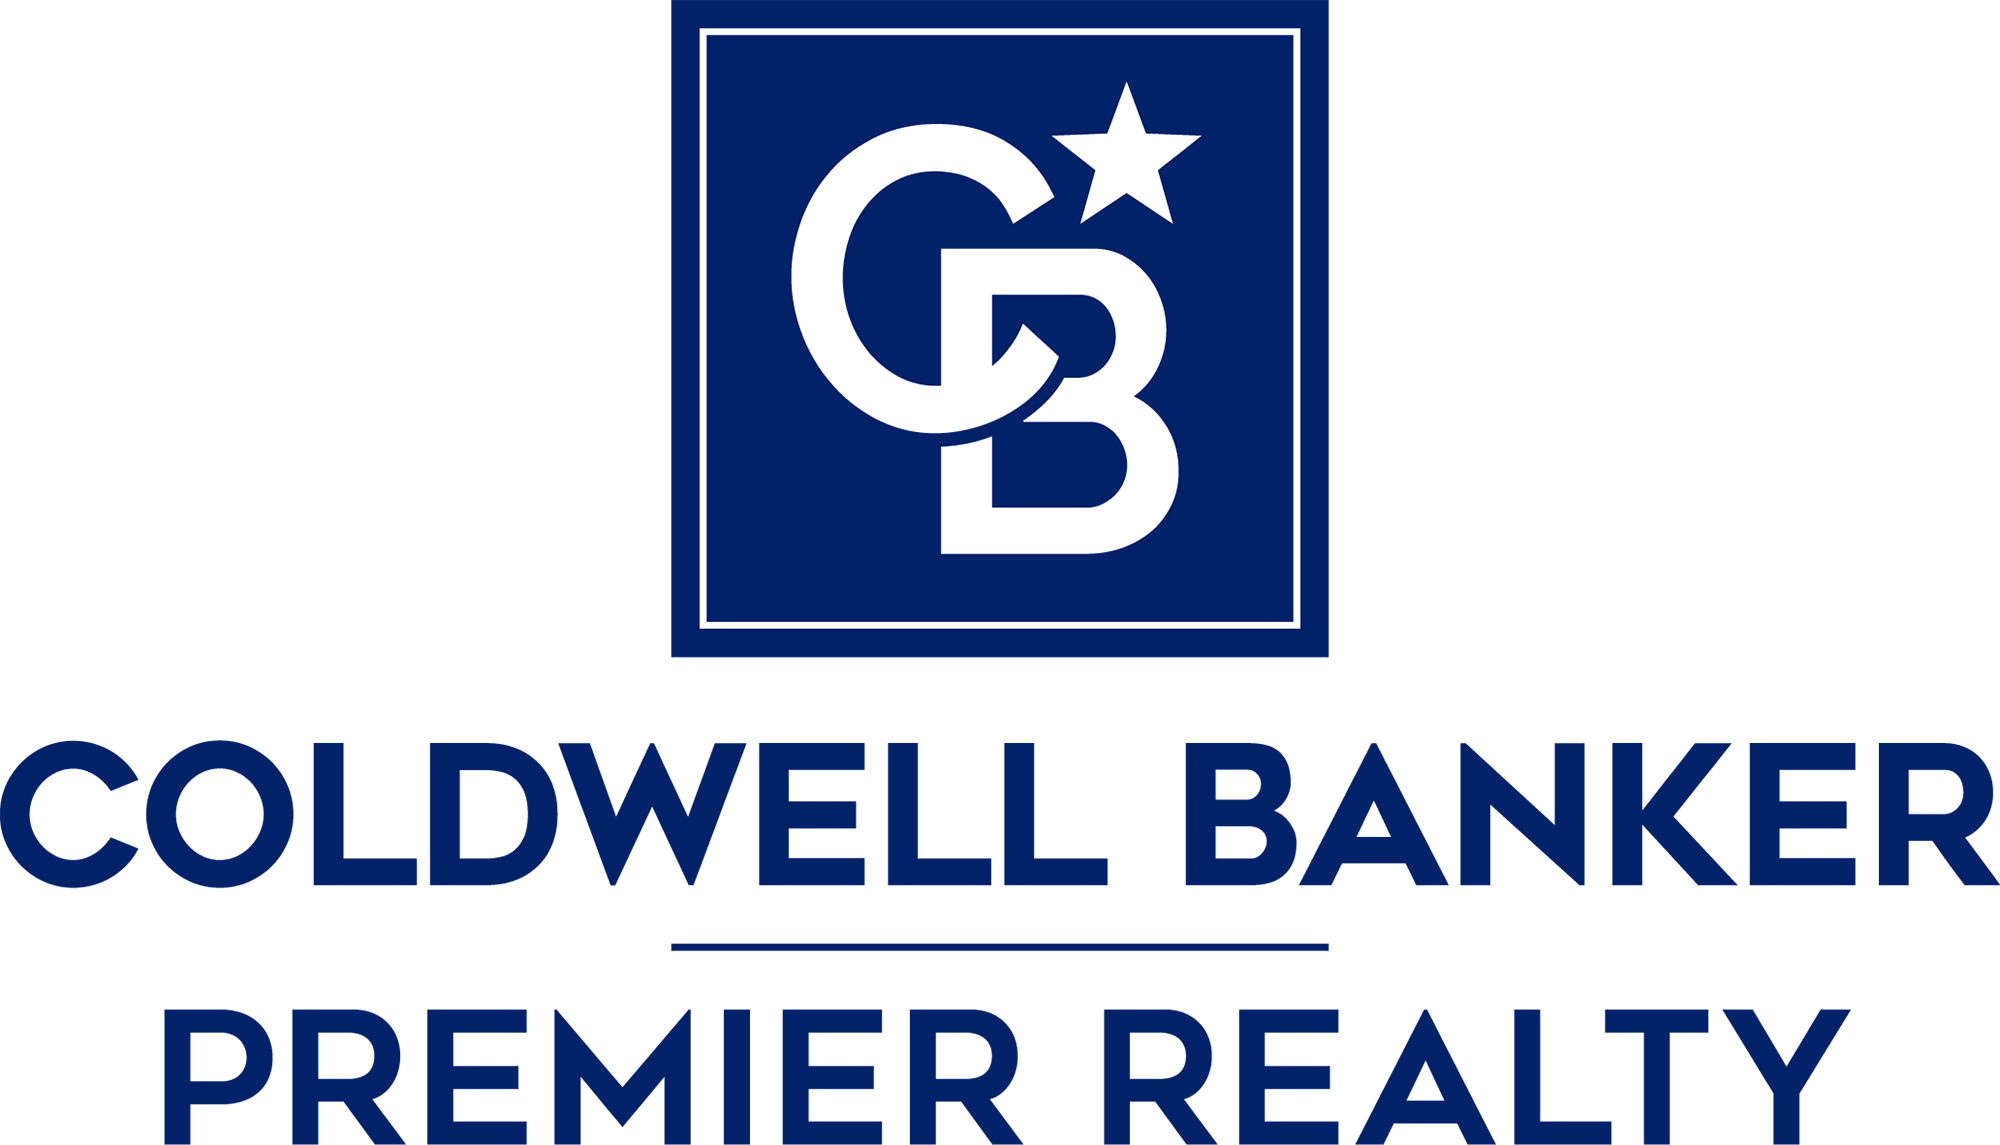 Coldwell Banker Premier Realty Logo